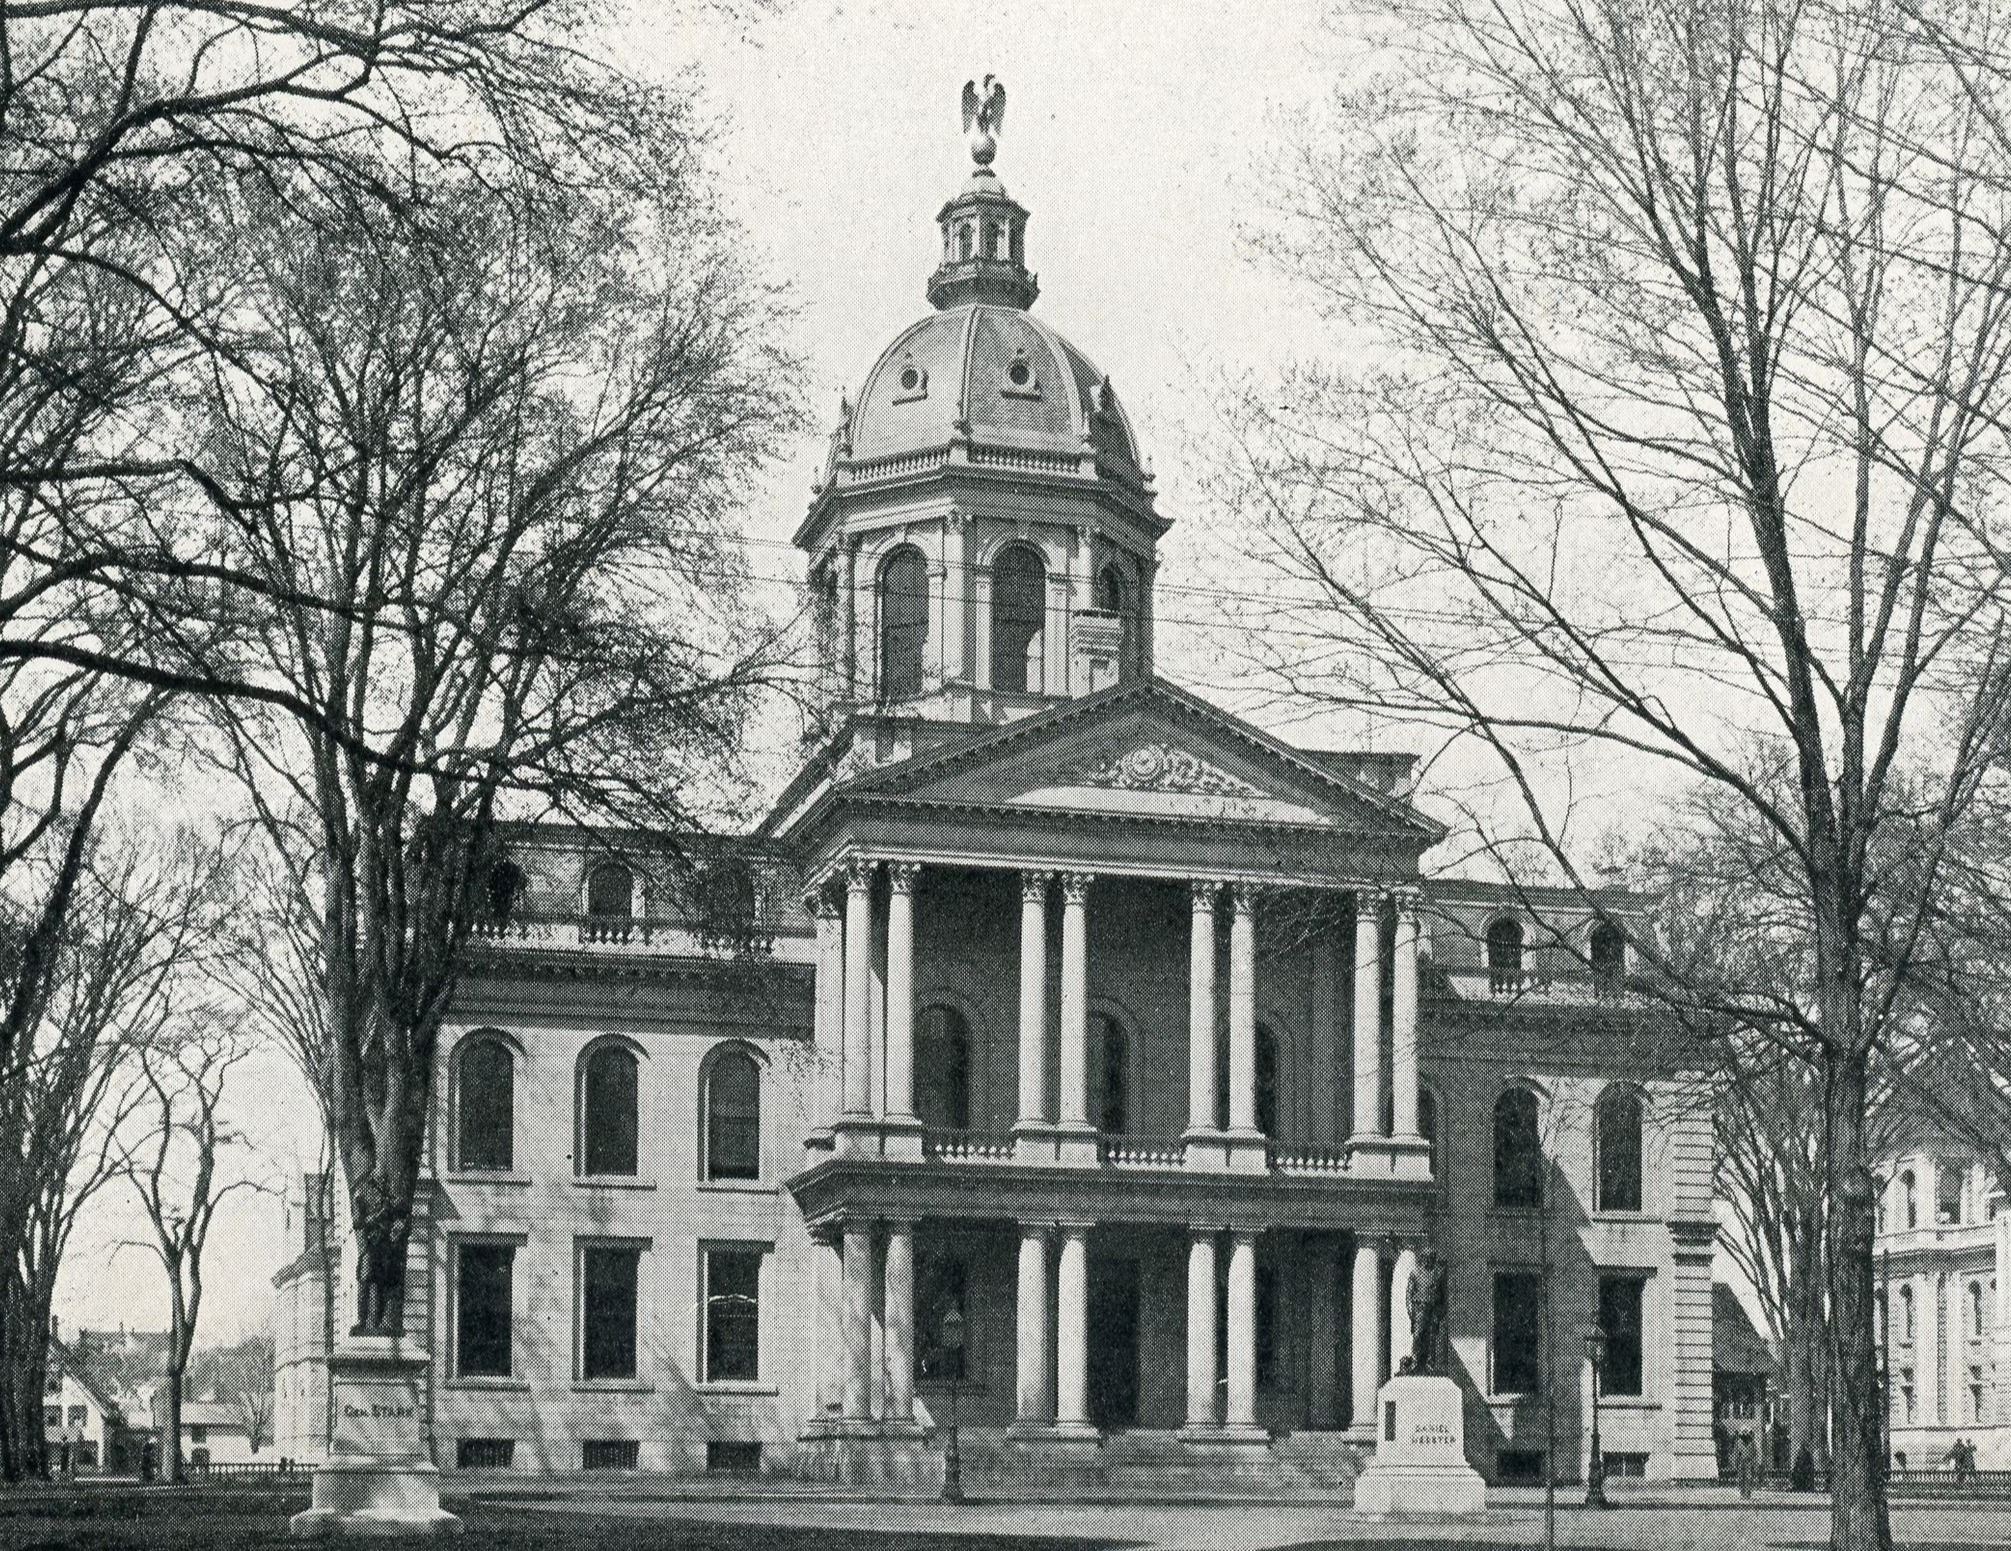 Exterior View of the State House